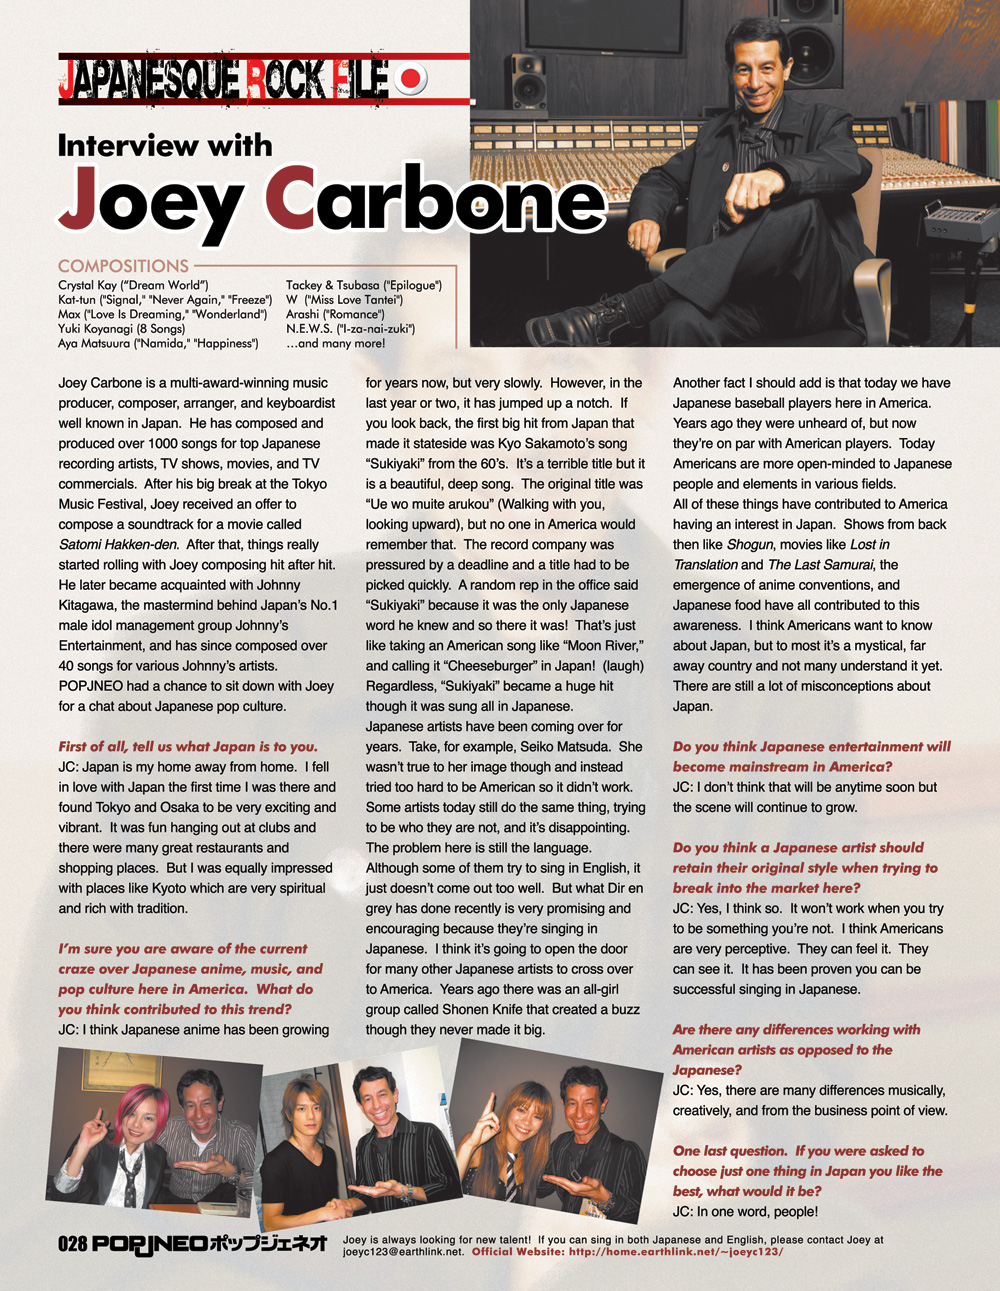 Interview with Joey Carbone